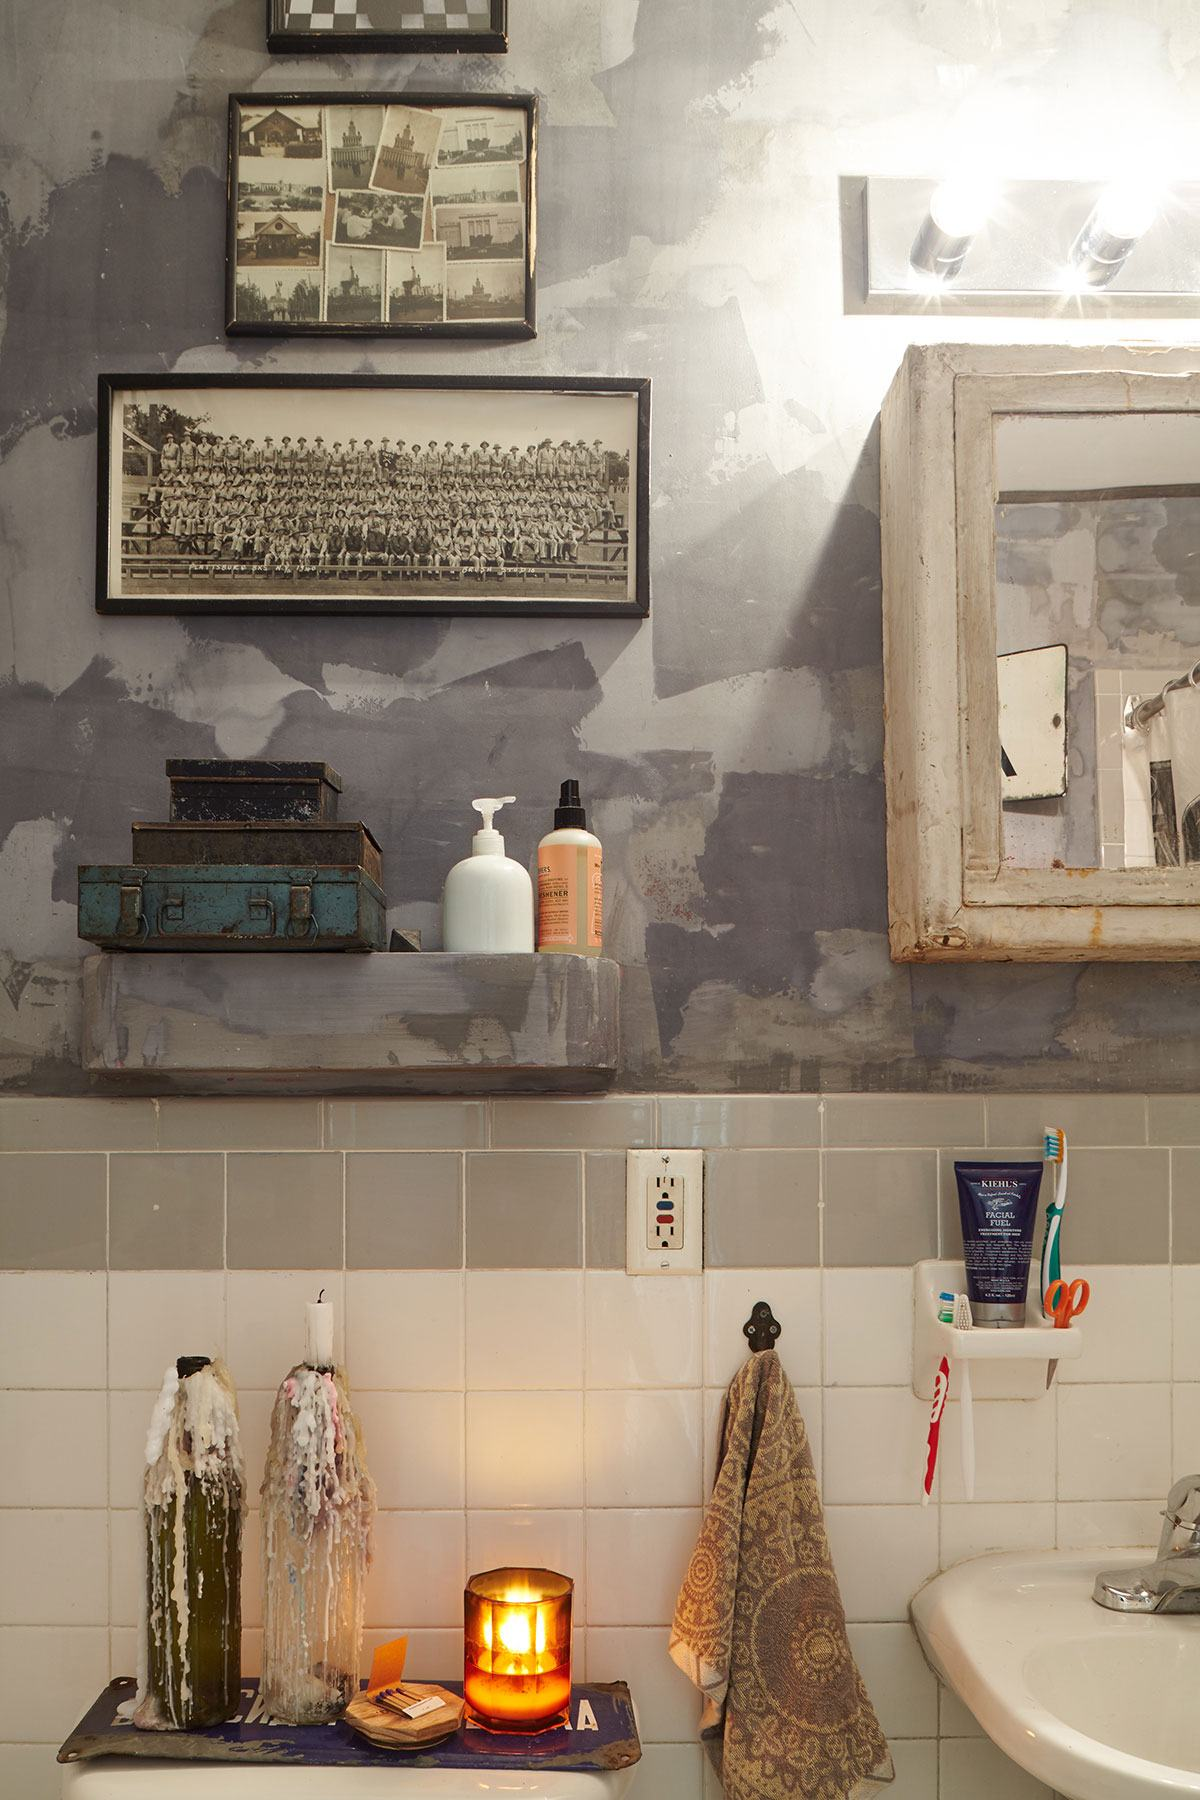 sasha-maslov-brooklyn-navy-yard-loft-bathroom